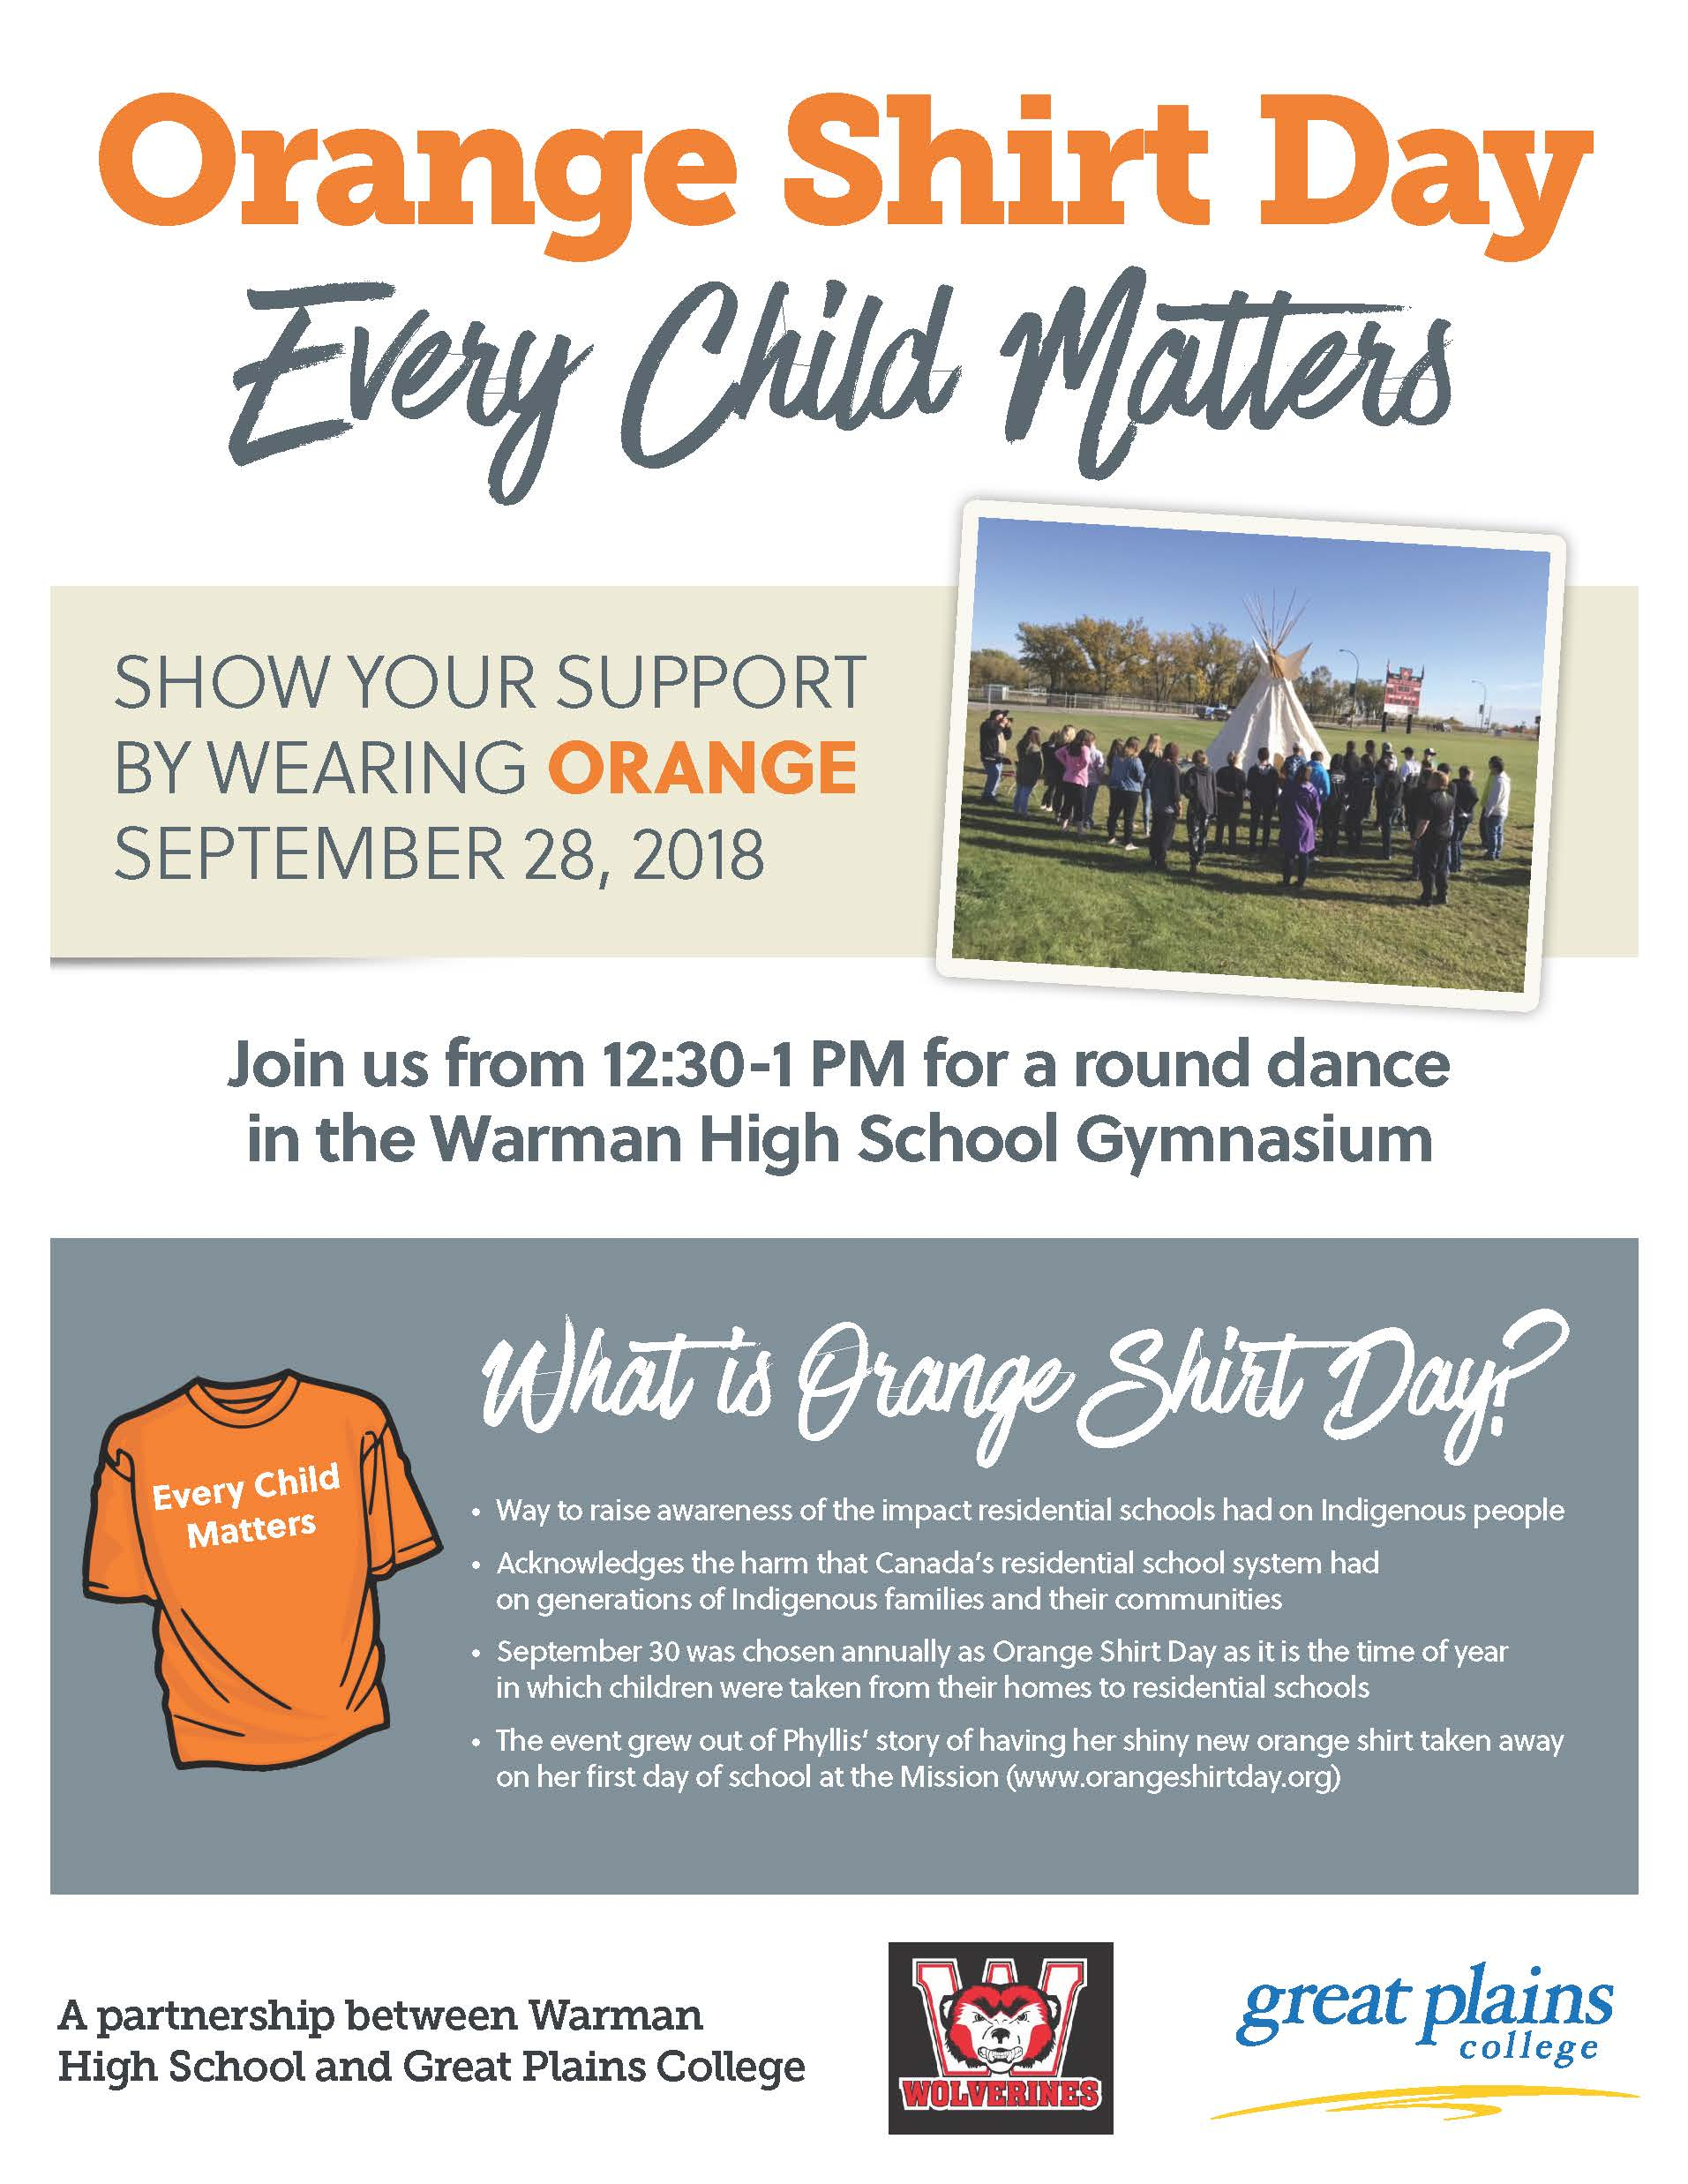 Poster explaining the Orange Shirt Day event.